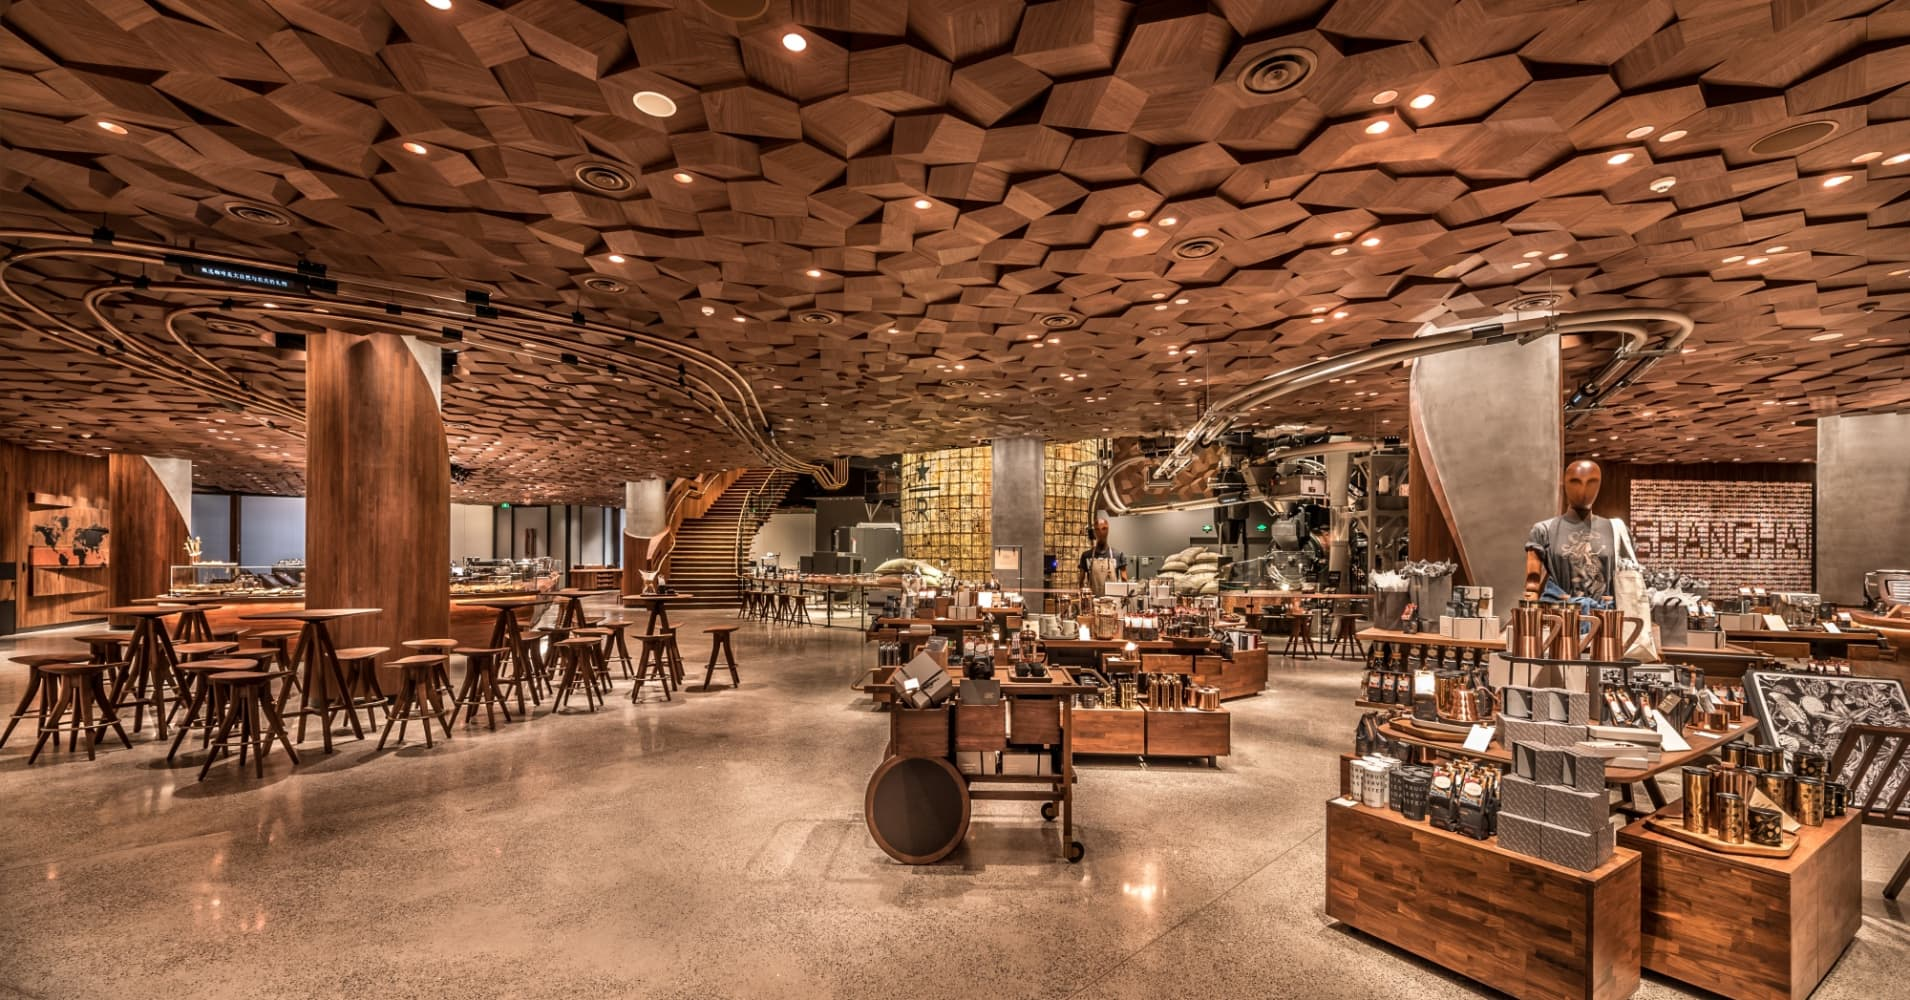 The world's biggest Starbucks is opening its doors in Shanghai